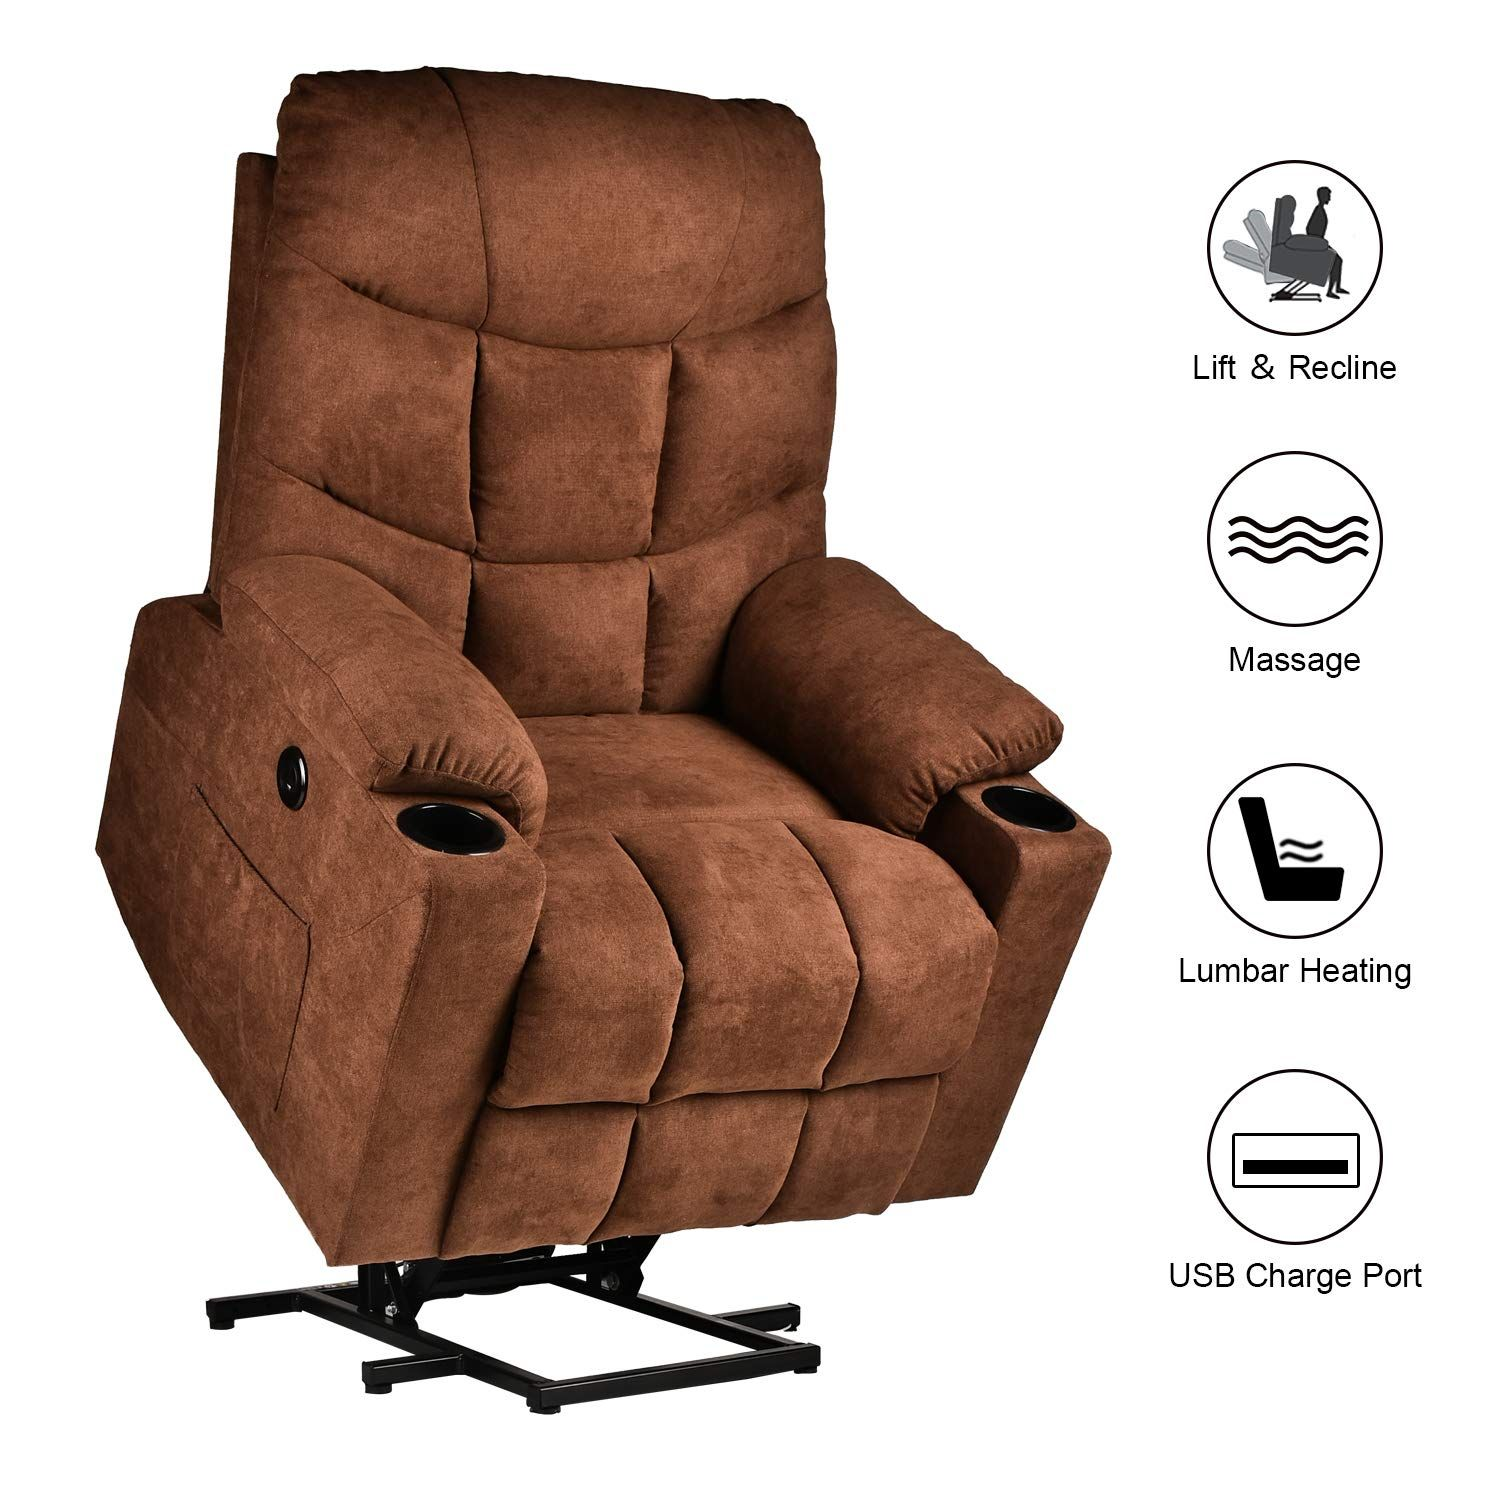 Relaxixi Power Lift Recliner Chair Electric Recliners For Elderly Heated Vibration Massage Sofa With Usb Por In 2020 Recliner Chair Lift Recliners Electric Recliners